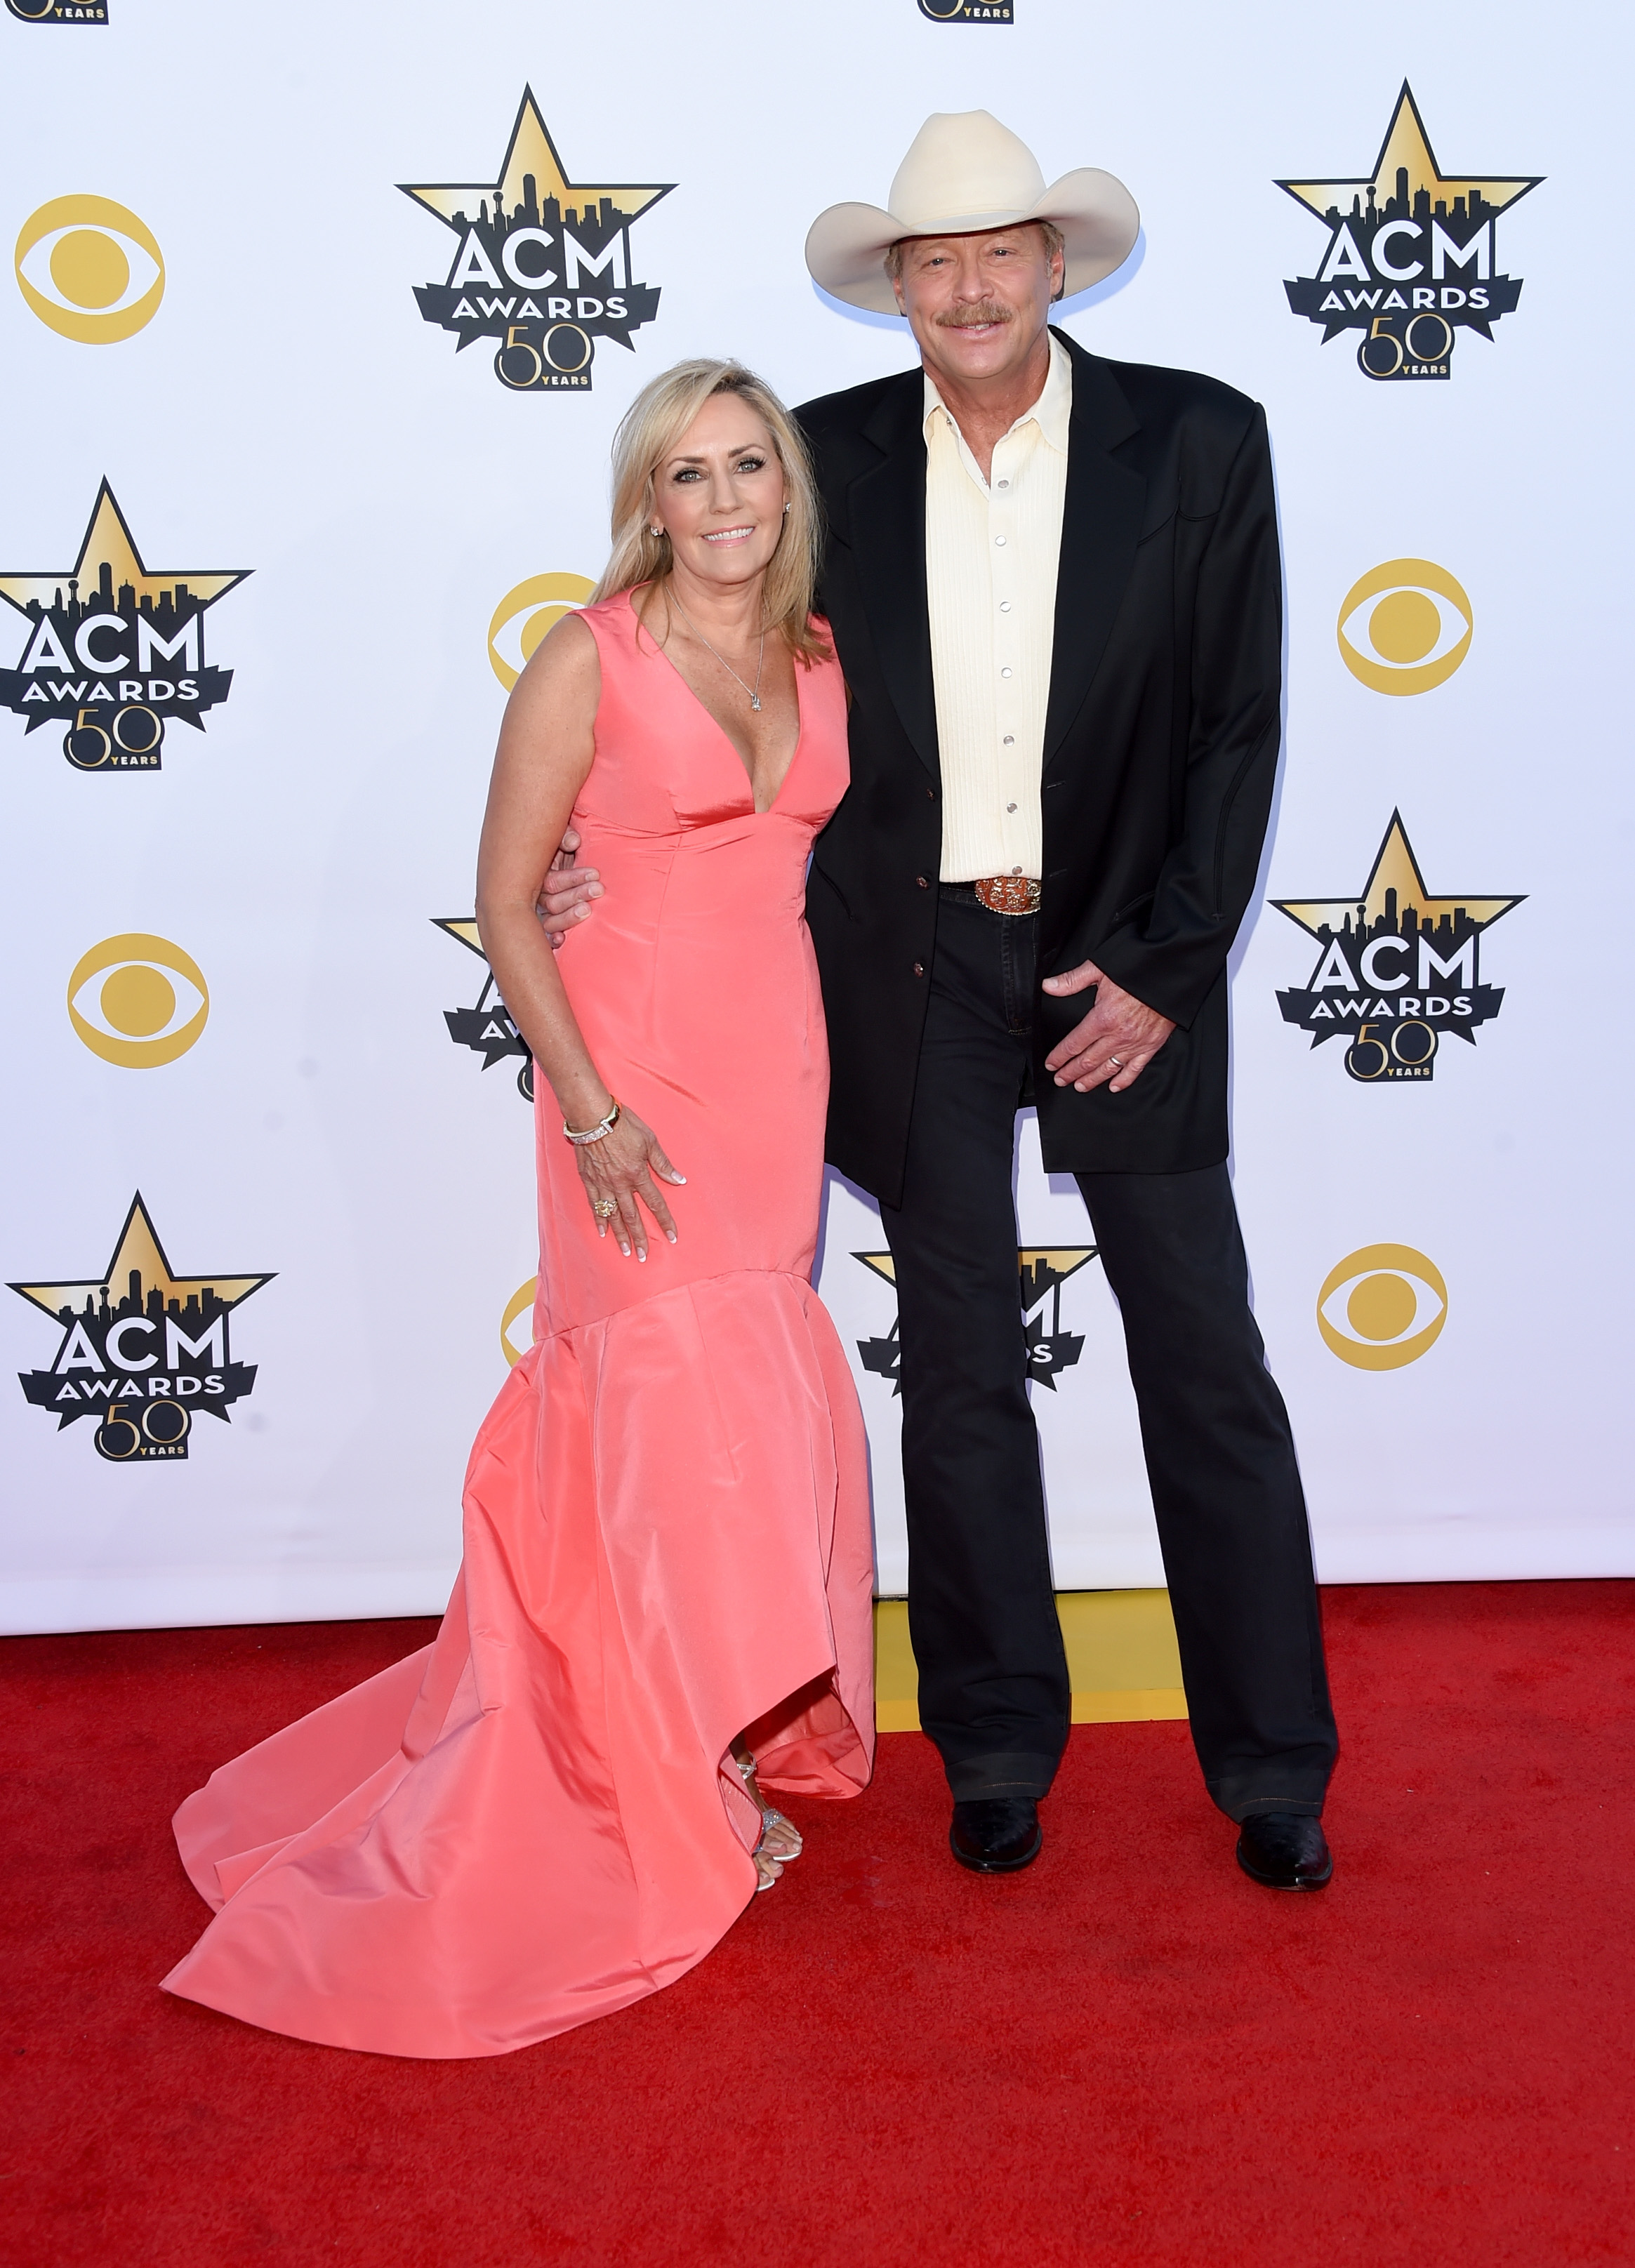 Alan Jackson and his wife, Denise Jackson, attend the 50th Academy of Country Music Awards at AT&T Stadium in Arlington, Texas, on April 19, 2015.